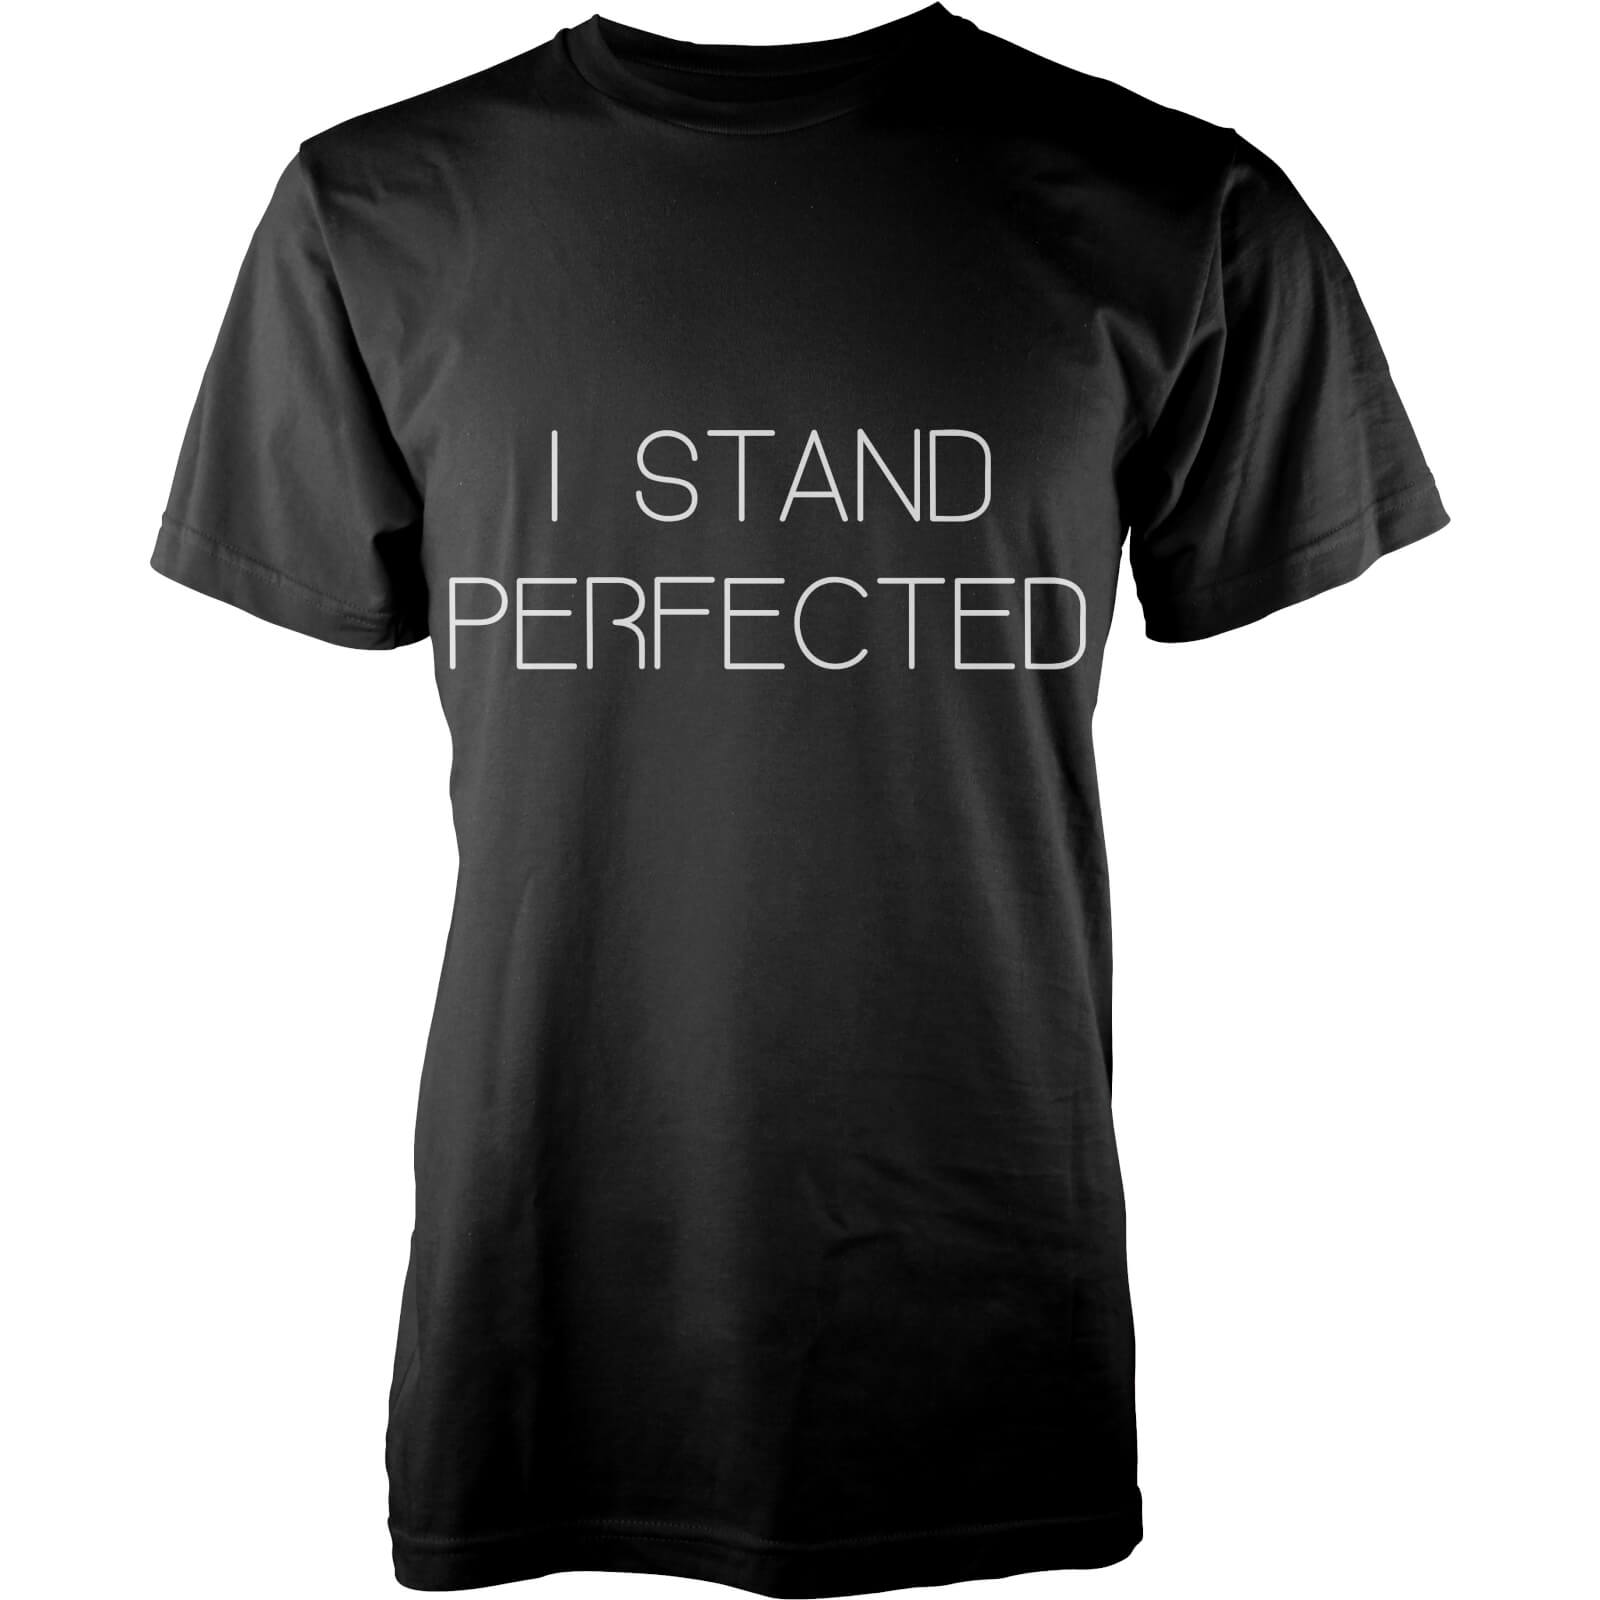 I Stand Perfected T-Shirt - Black